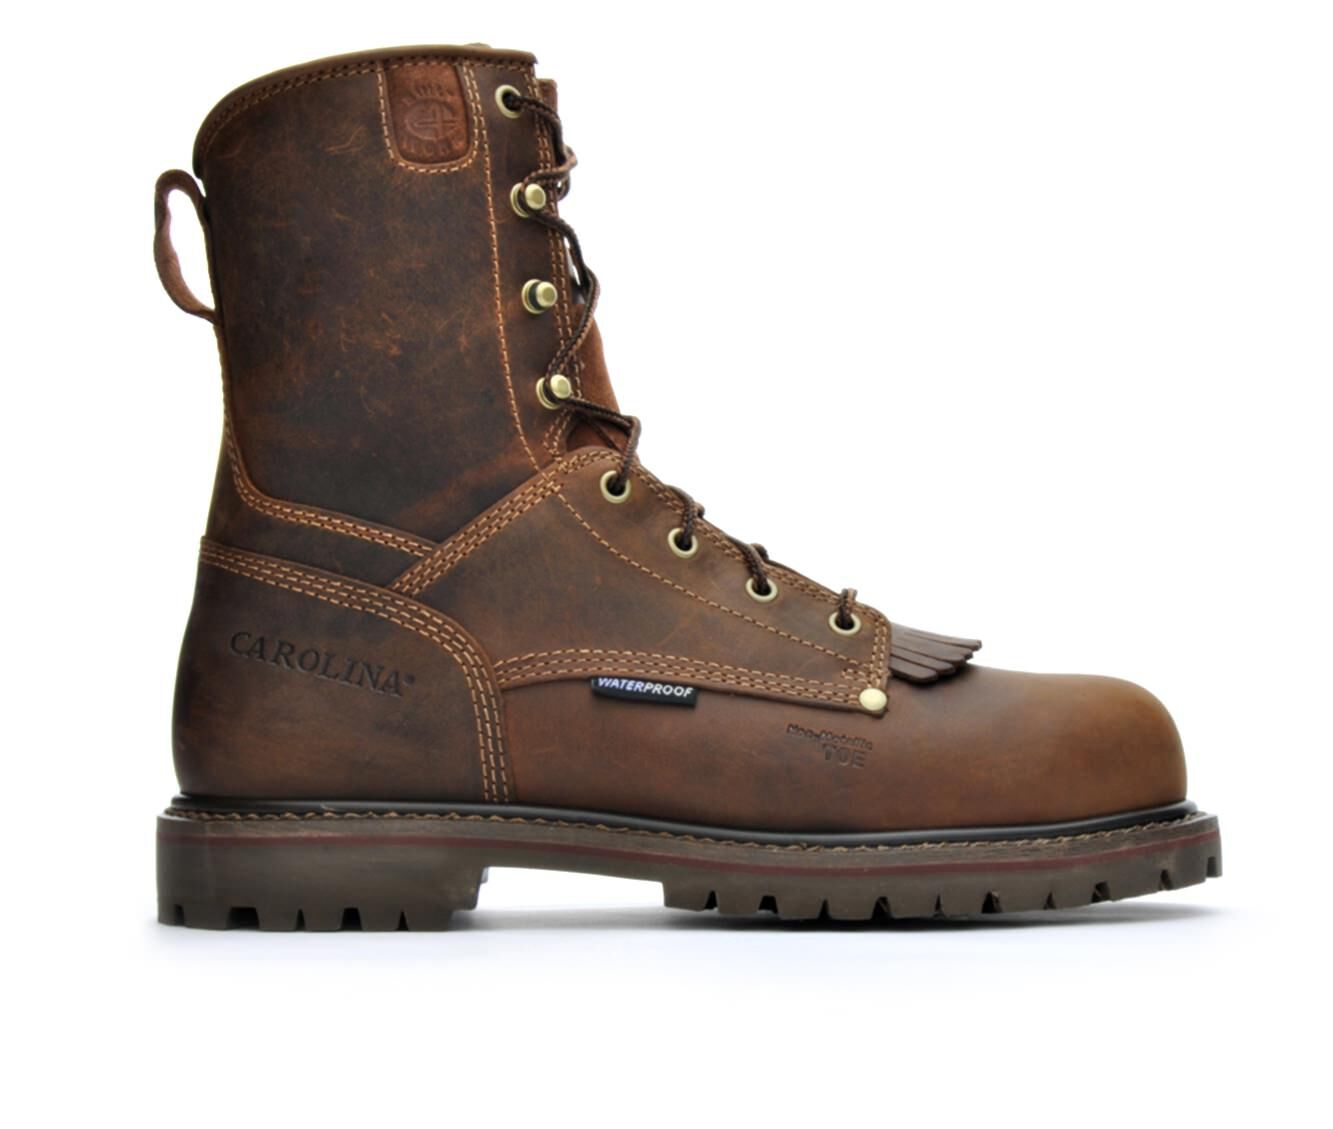 Men's Carolina Boots CA8528 8 In Composite Toe Waterproof Work Boots free shipping looking for J2adgTw